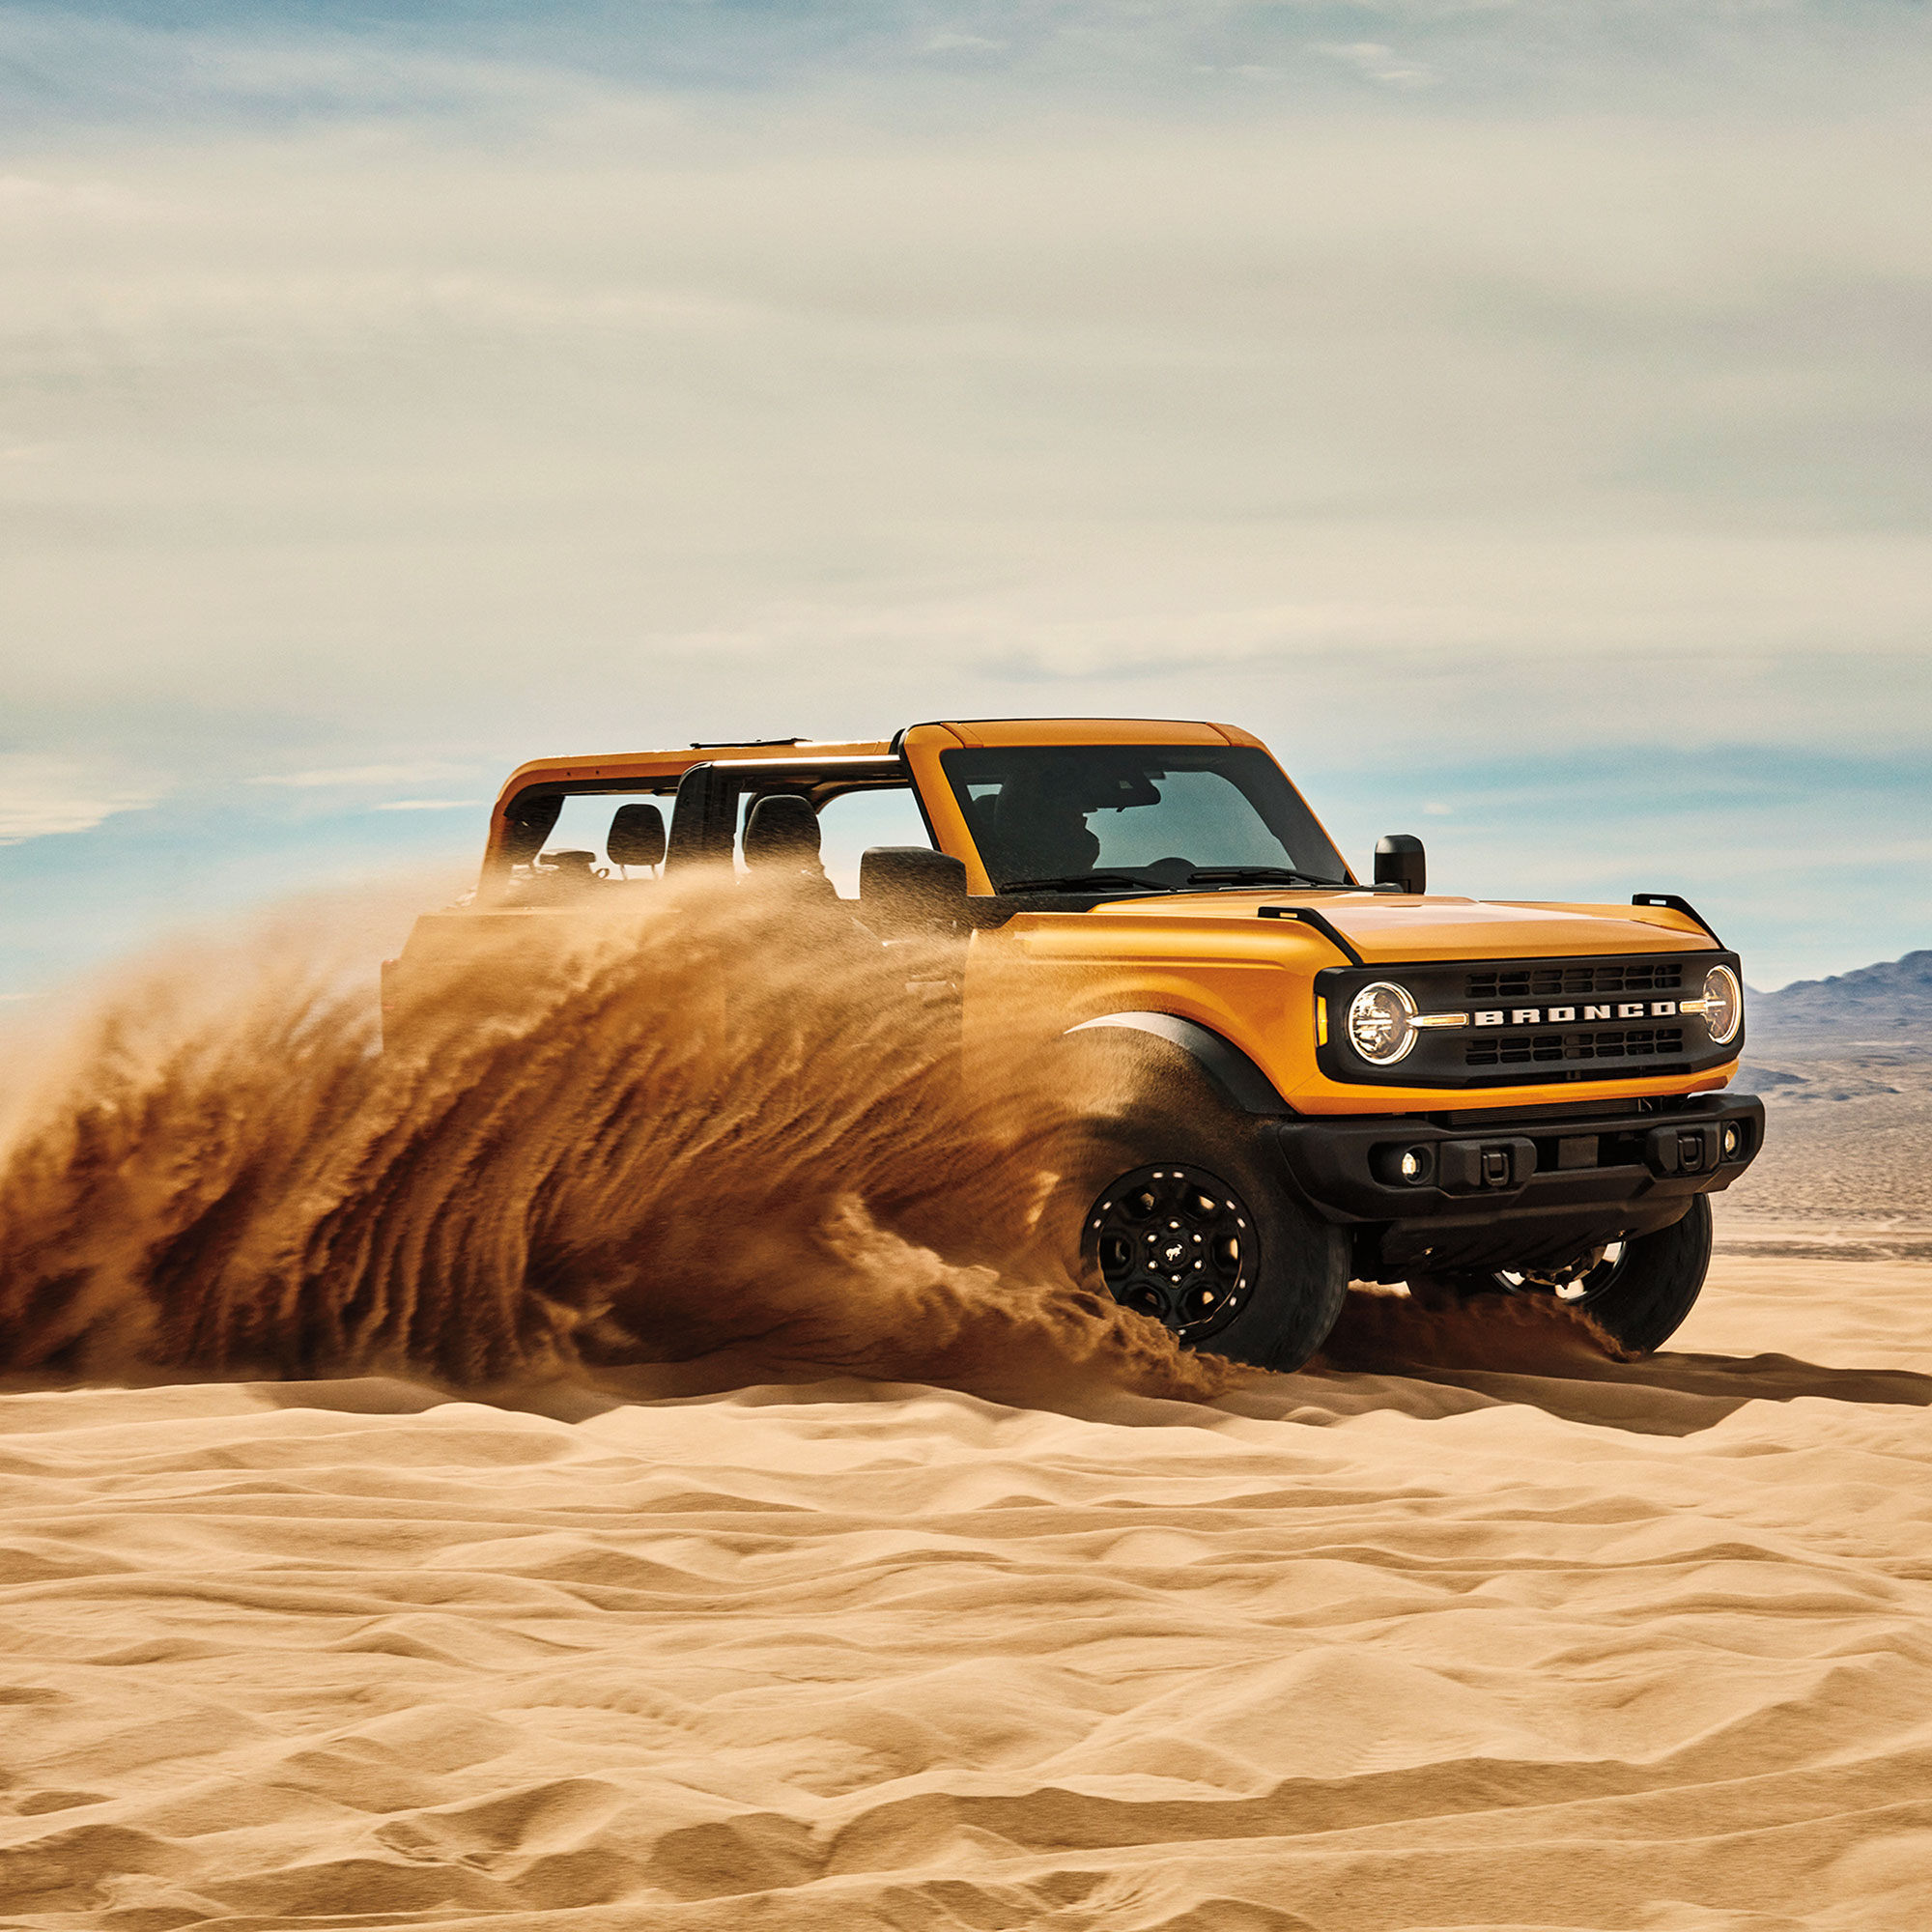 Ford Bronco tearing through sand in desert